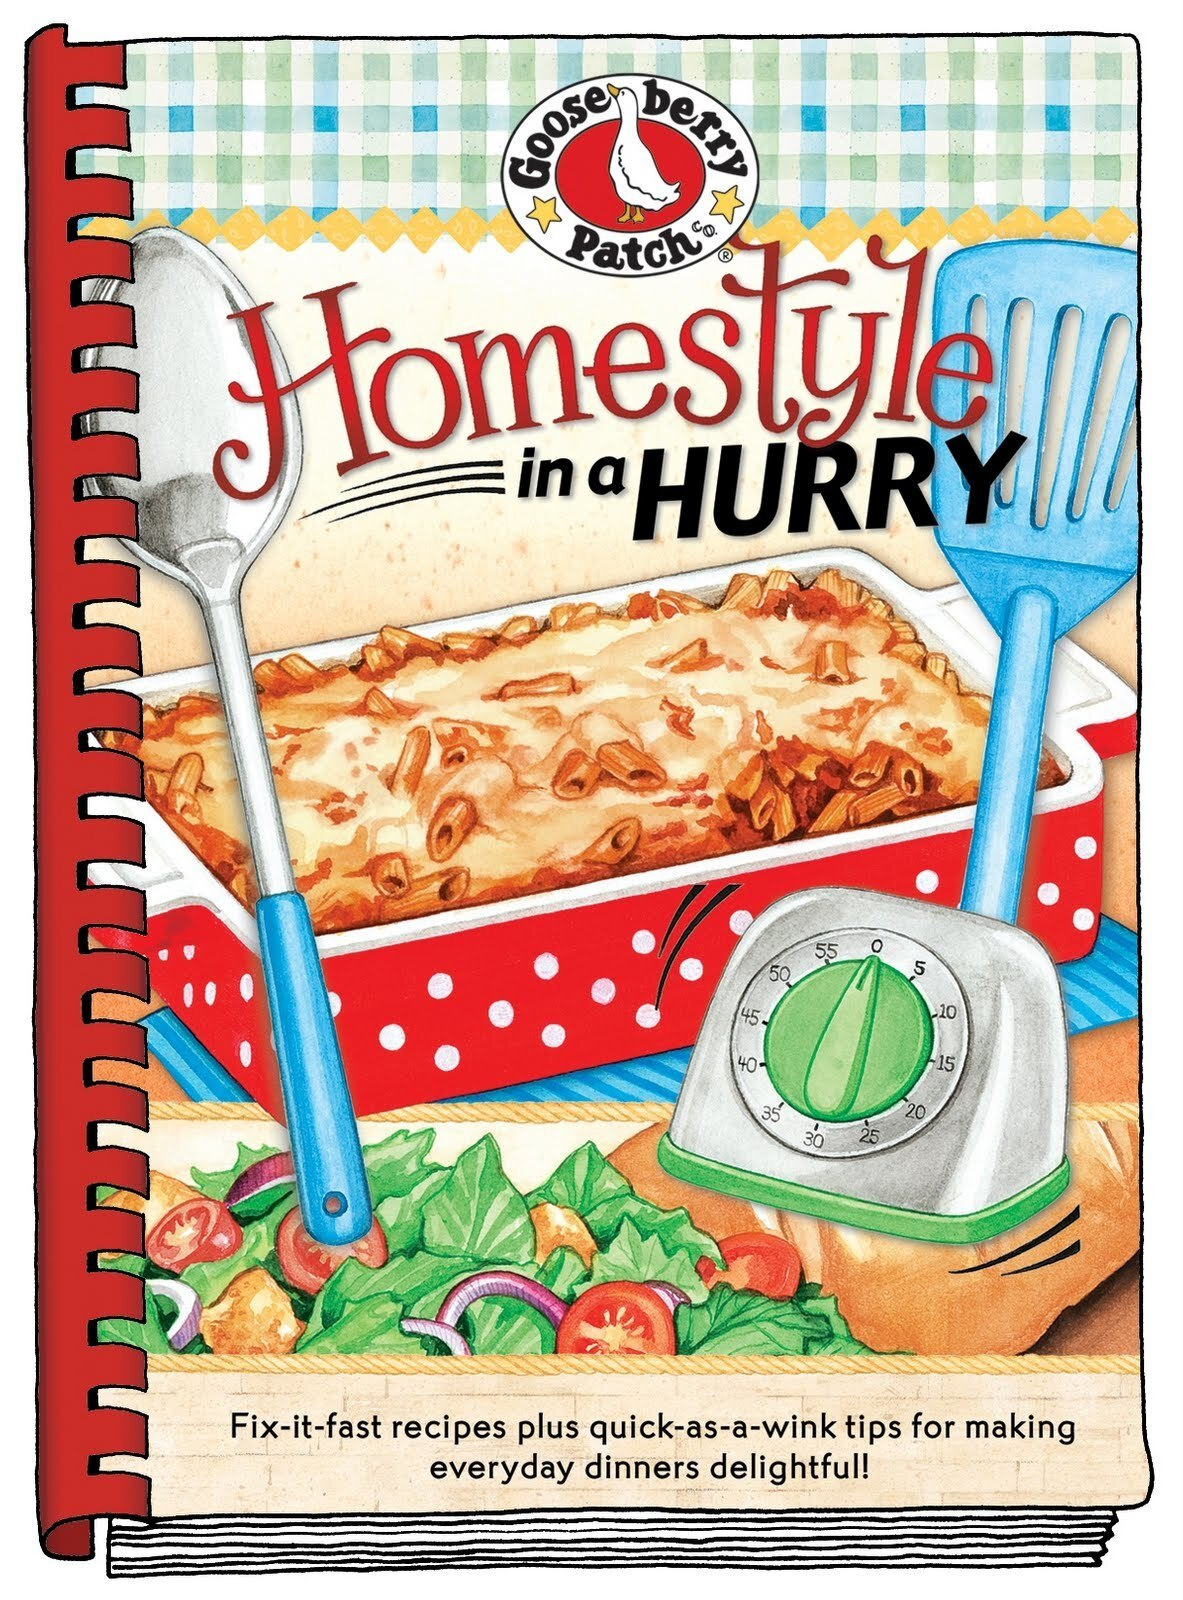 Homestyle In A Hurry - Review Recipes & Giveaway Reminder!